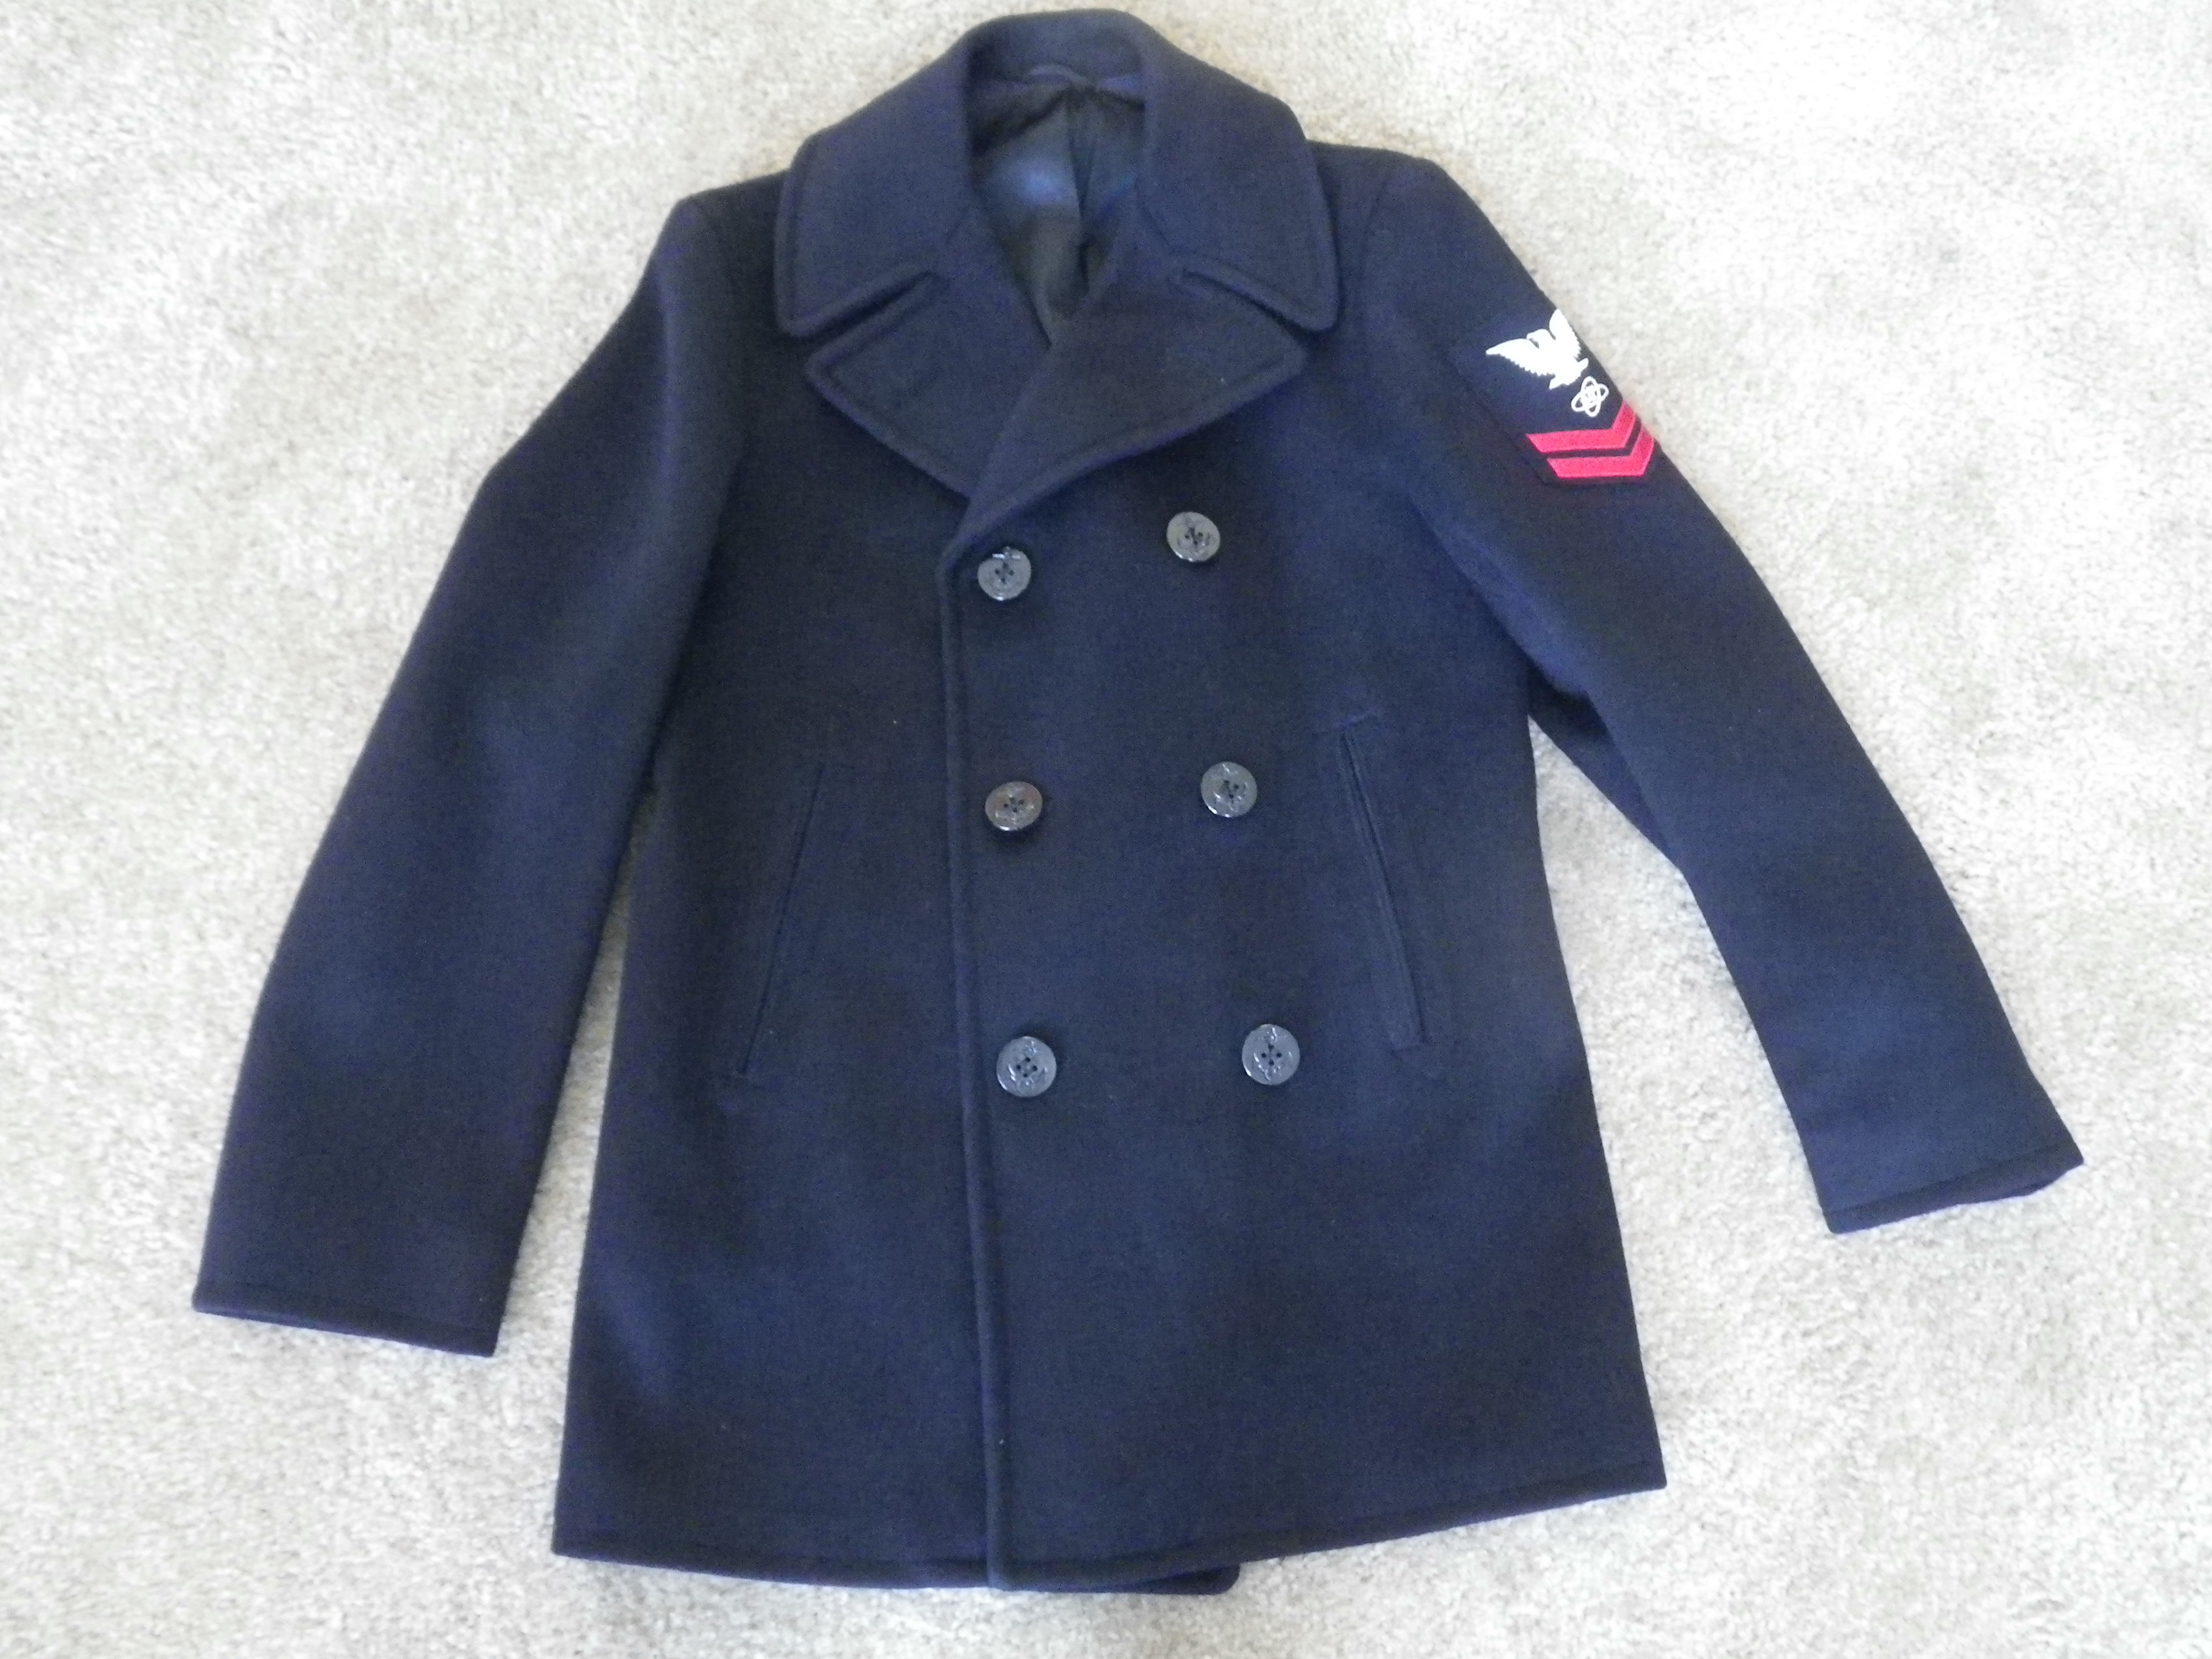 Needing Help dating a NAVY Pea Coat Please... - The eBay Community